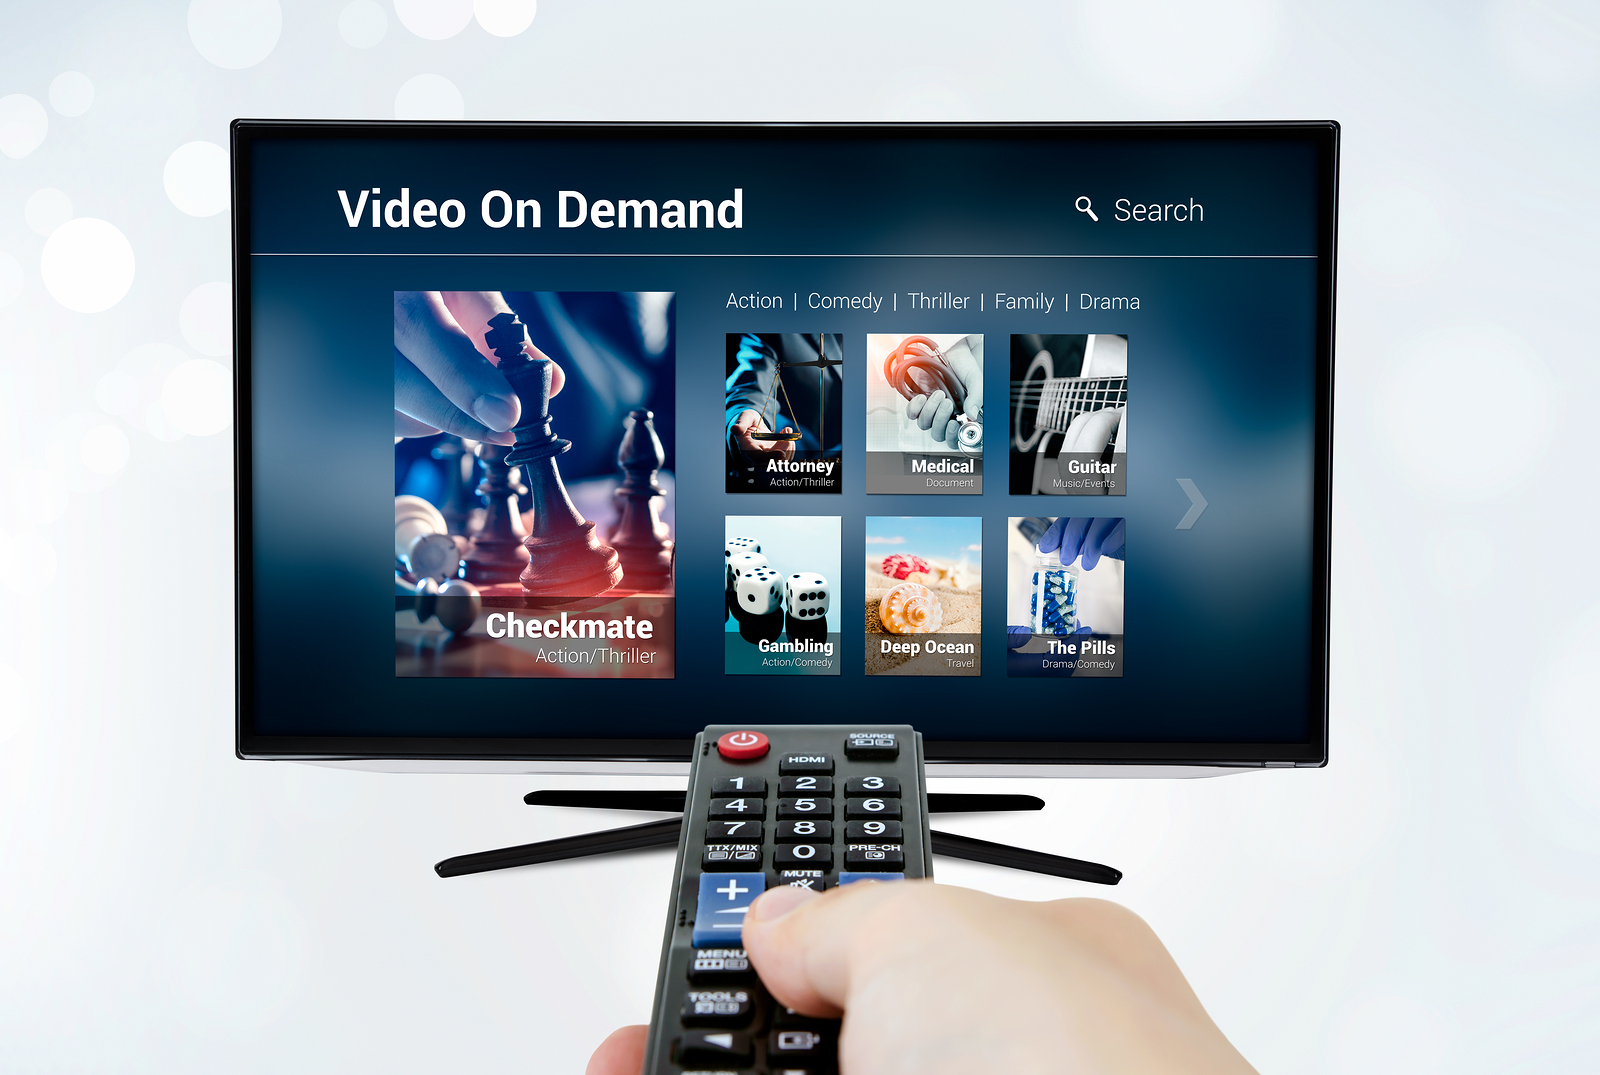 Video On Demand Vod Application Or Service On Smart Tv. Televisi